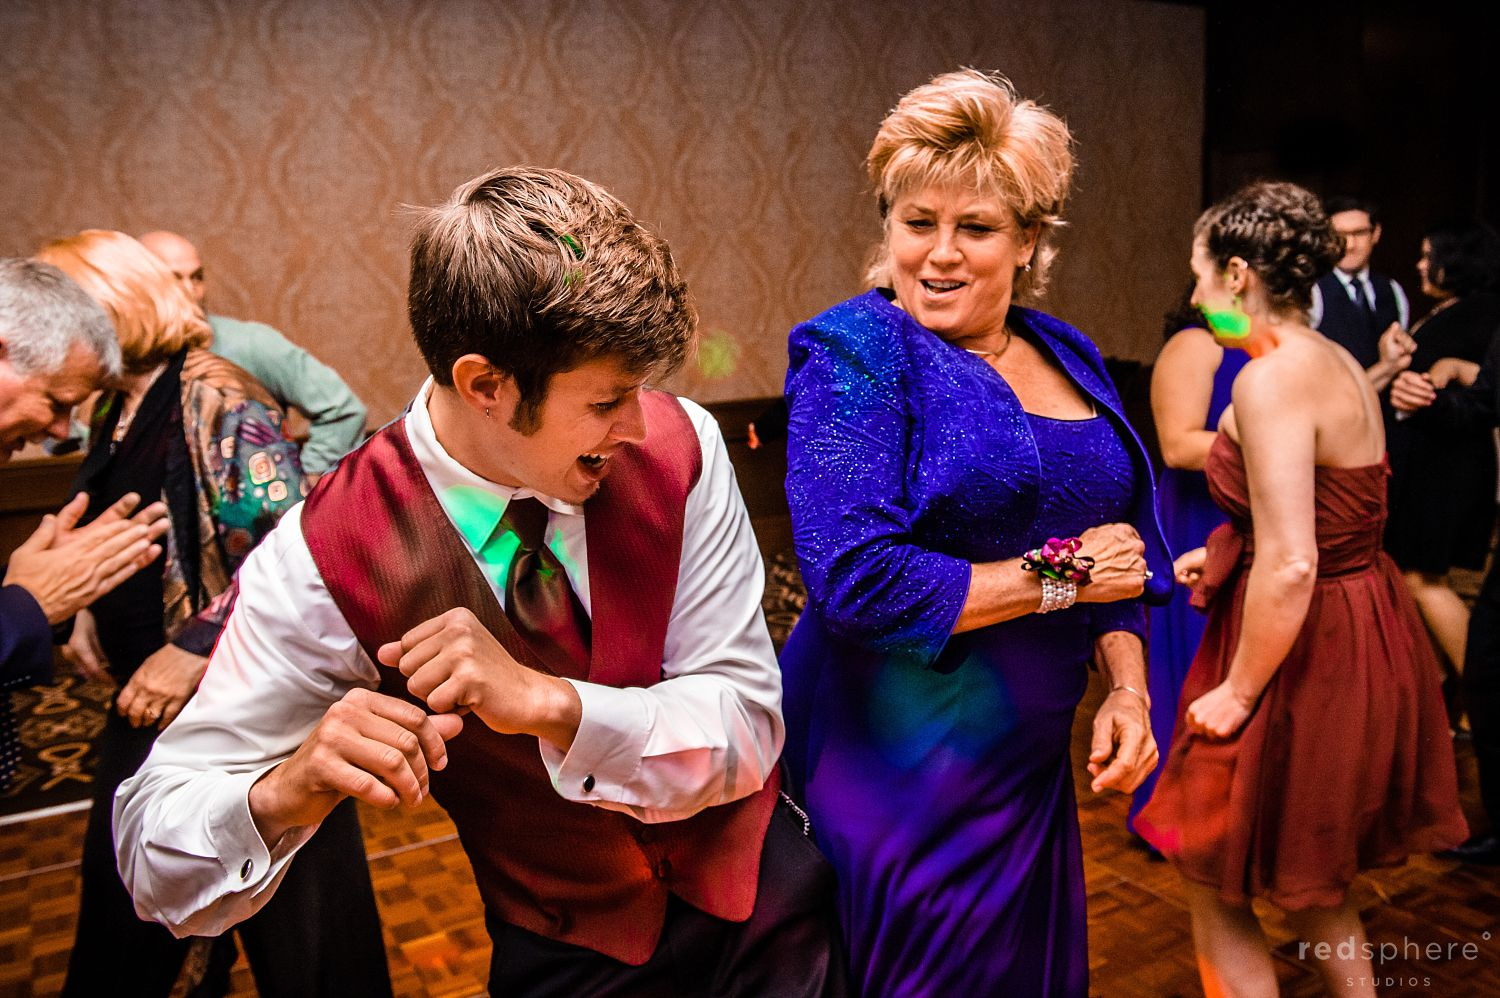 Family Members and Guests Dance to Good Music at The Inn at Spanish Bay Wedding After Party